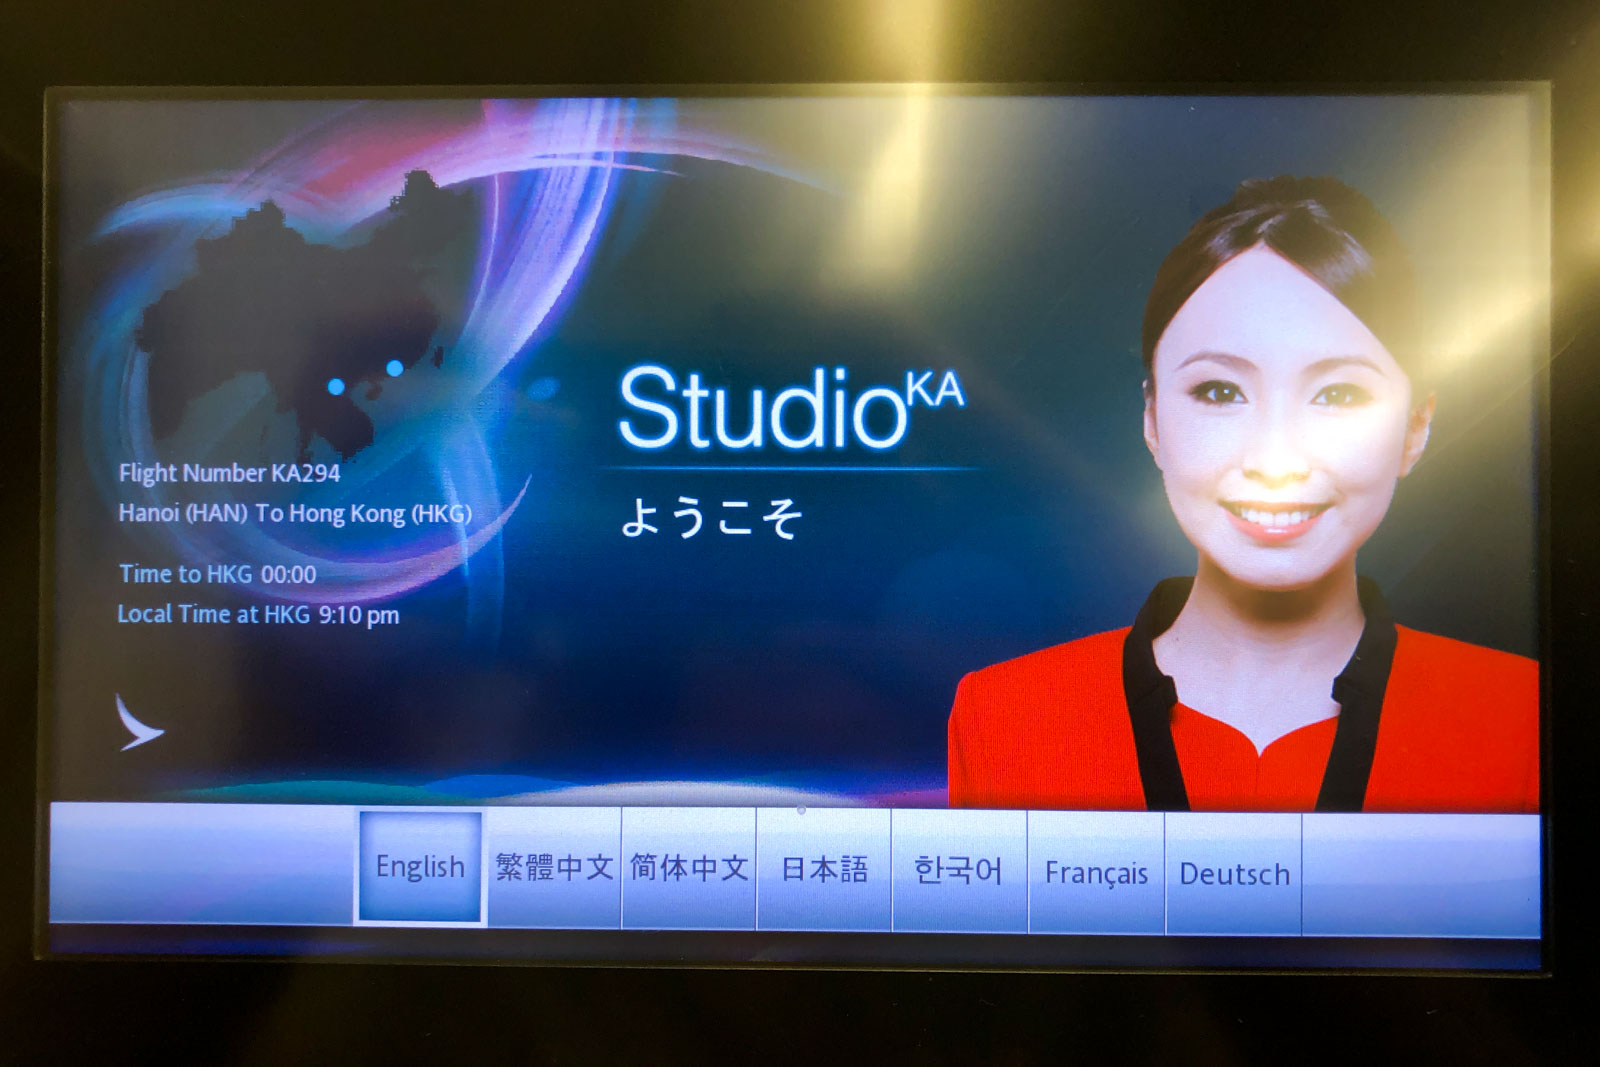 StudioKA Cathay Dragon In-Flight Entertainment System